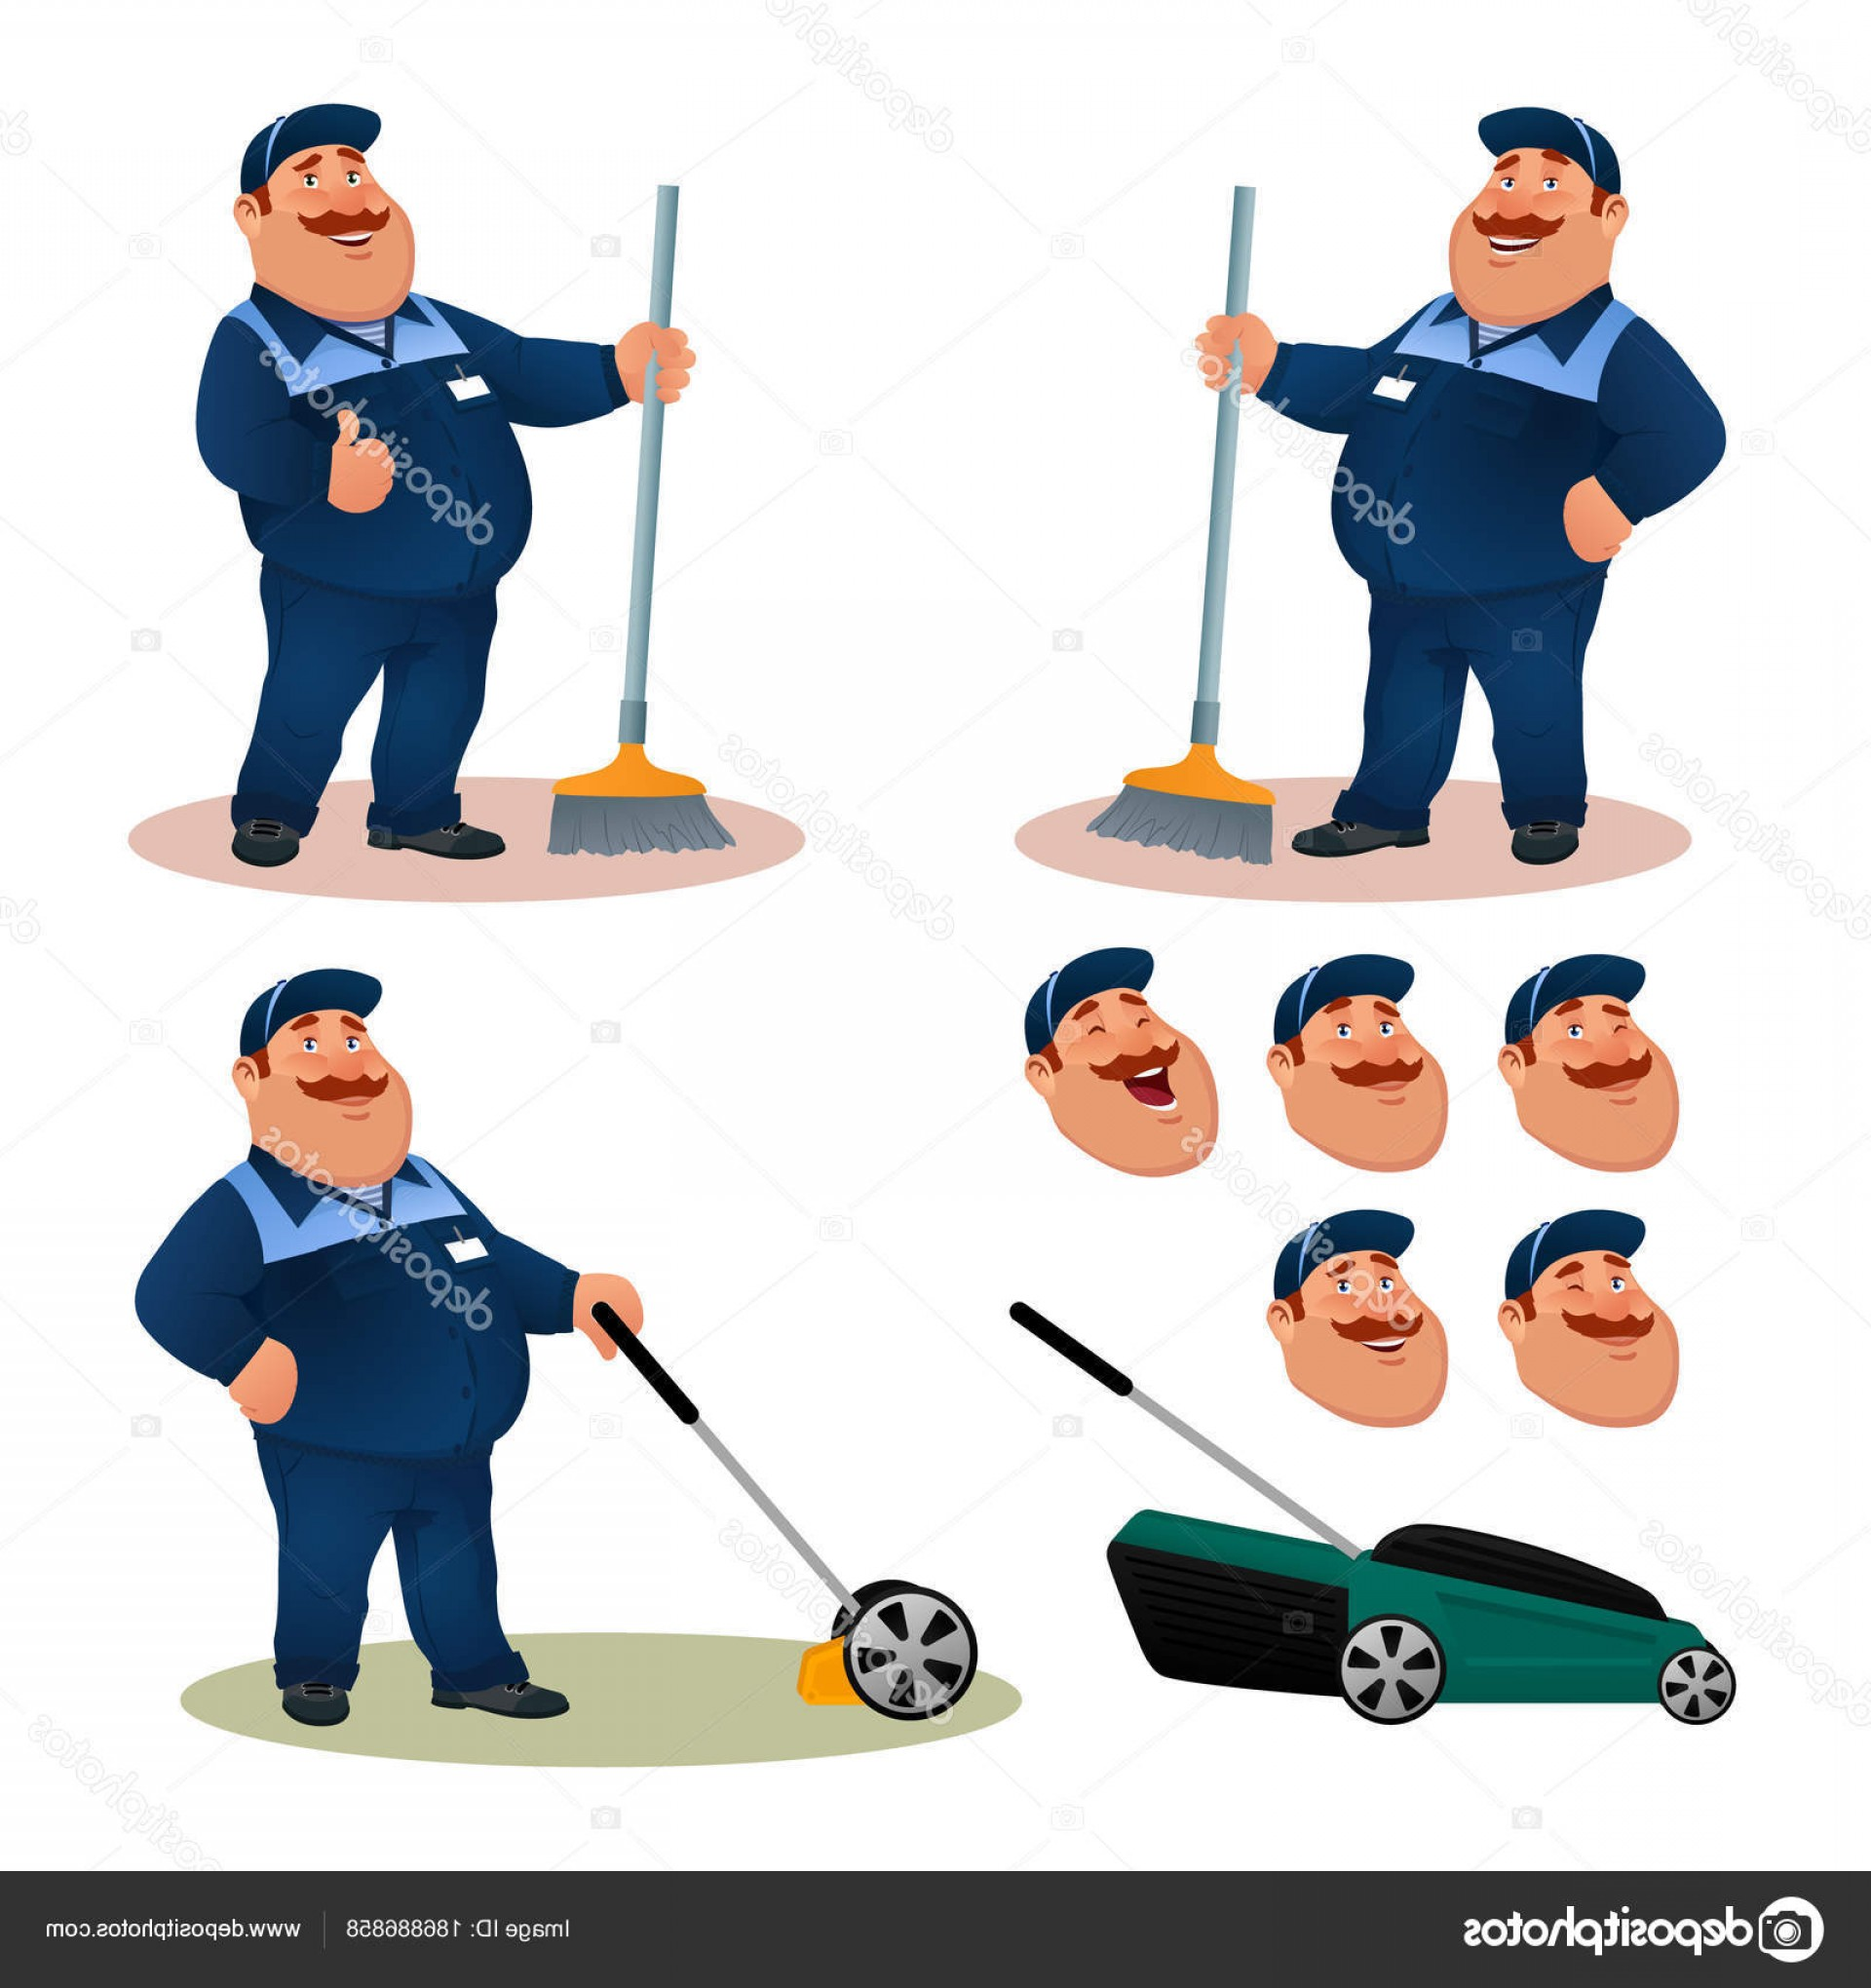 Cleaning Vector Janitorail: Stock Illustration Funny Cartoon Janitor Set With